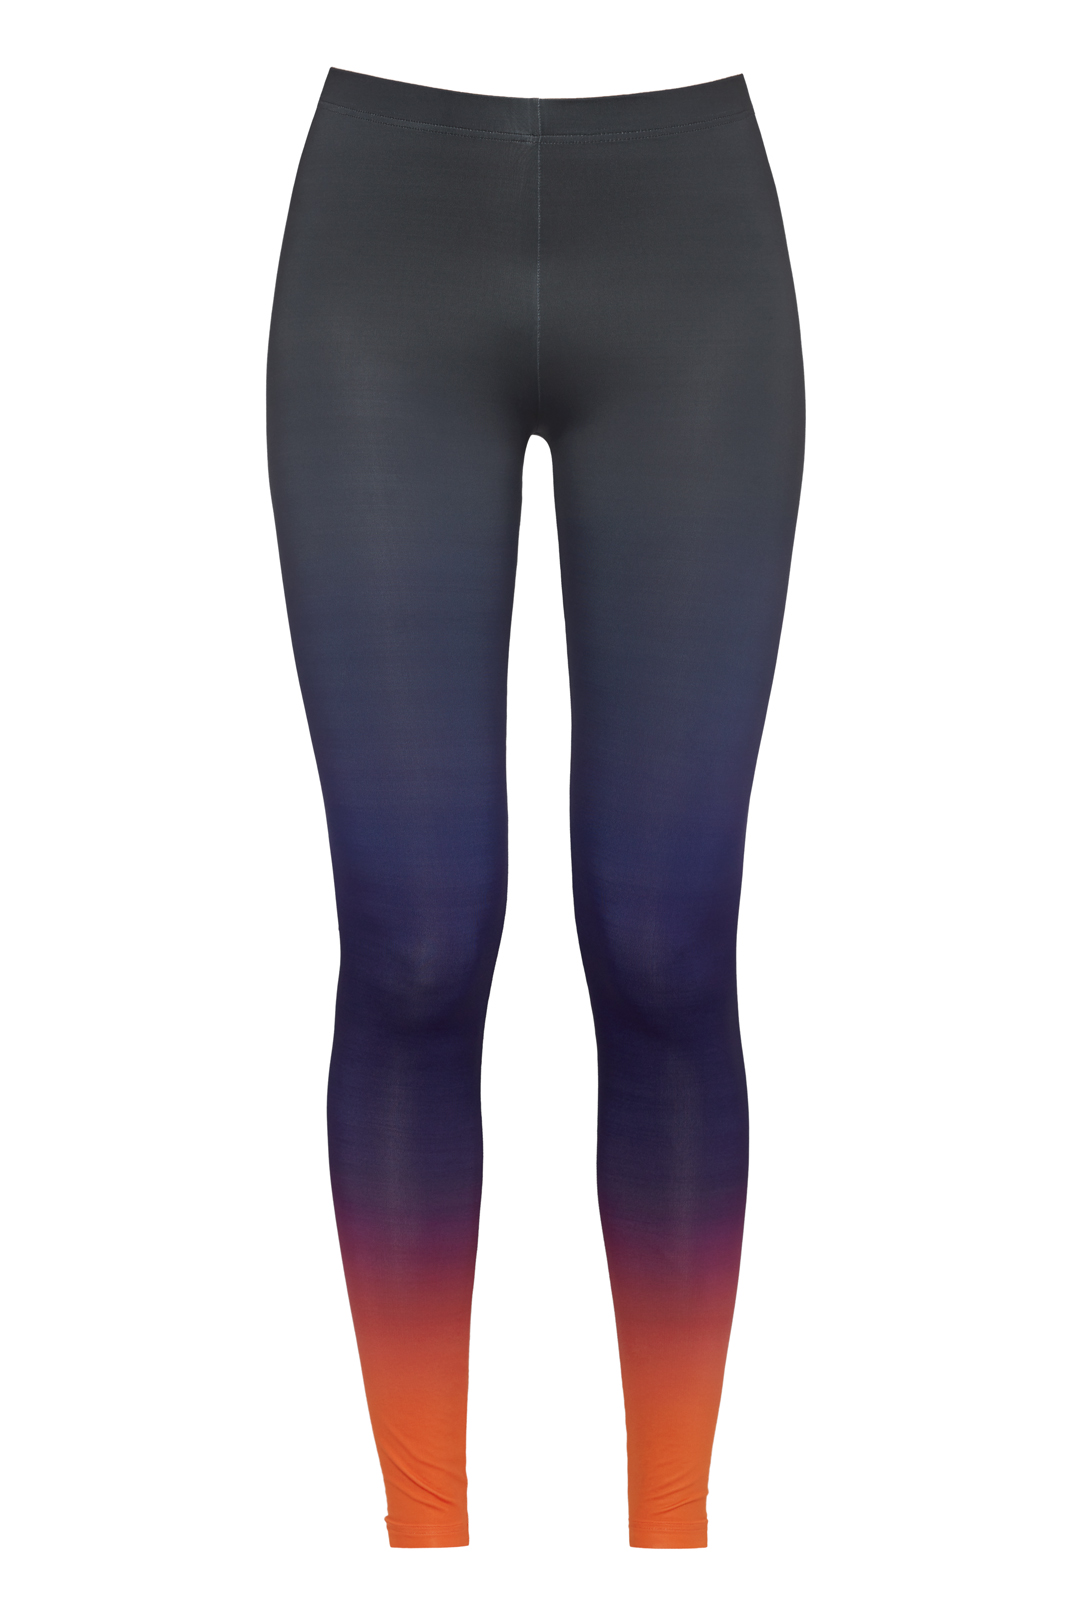 LATIFA leggings by Naked Bruce on curated-crowd.com